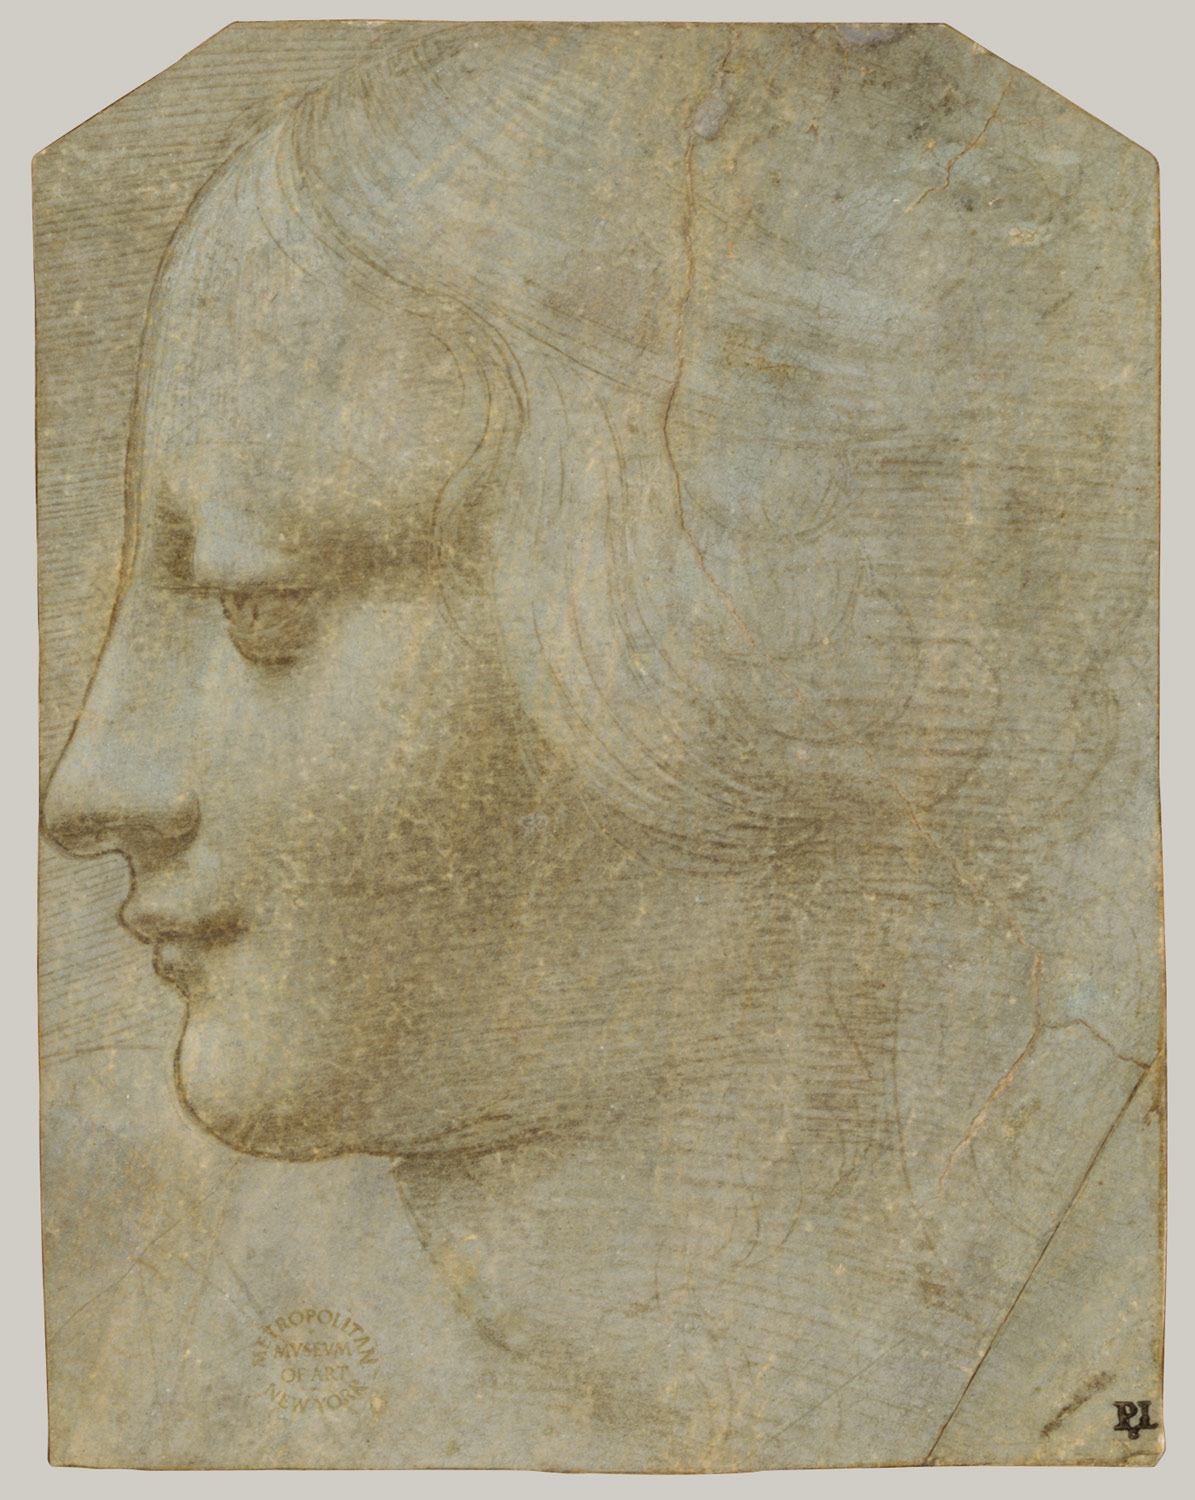 Head of a Woman in Profile to Lower Left